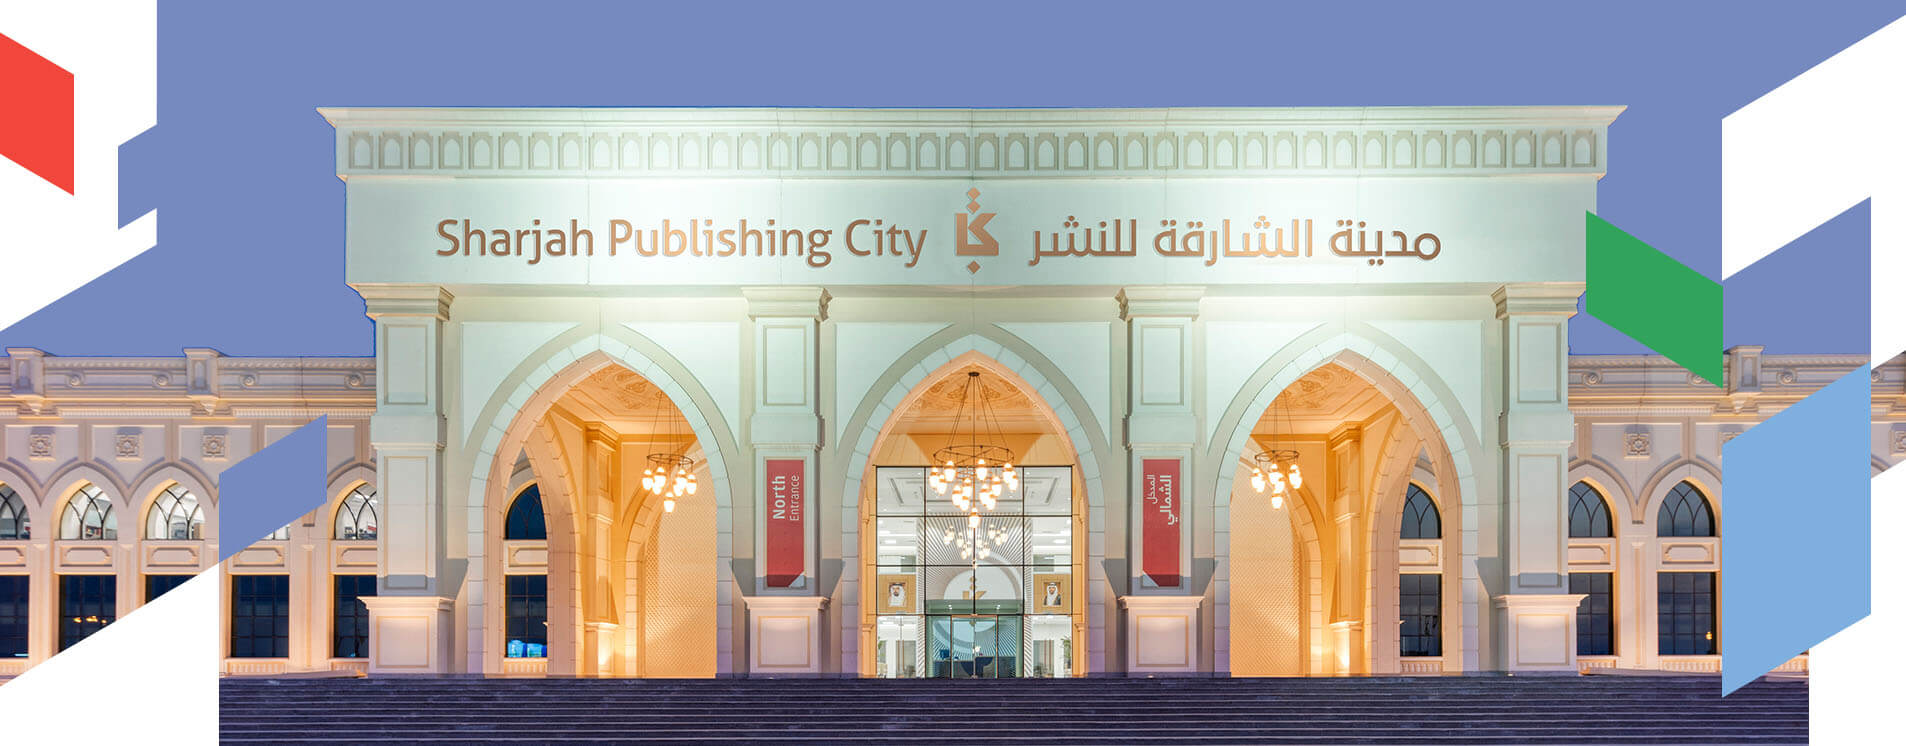 SPC Free Zone - Company Formation and Business Setup in Sharjah Publishing City Free Zone , UAE